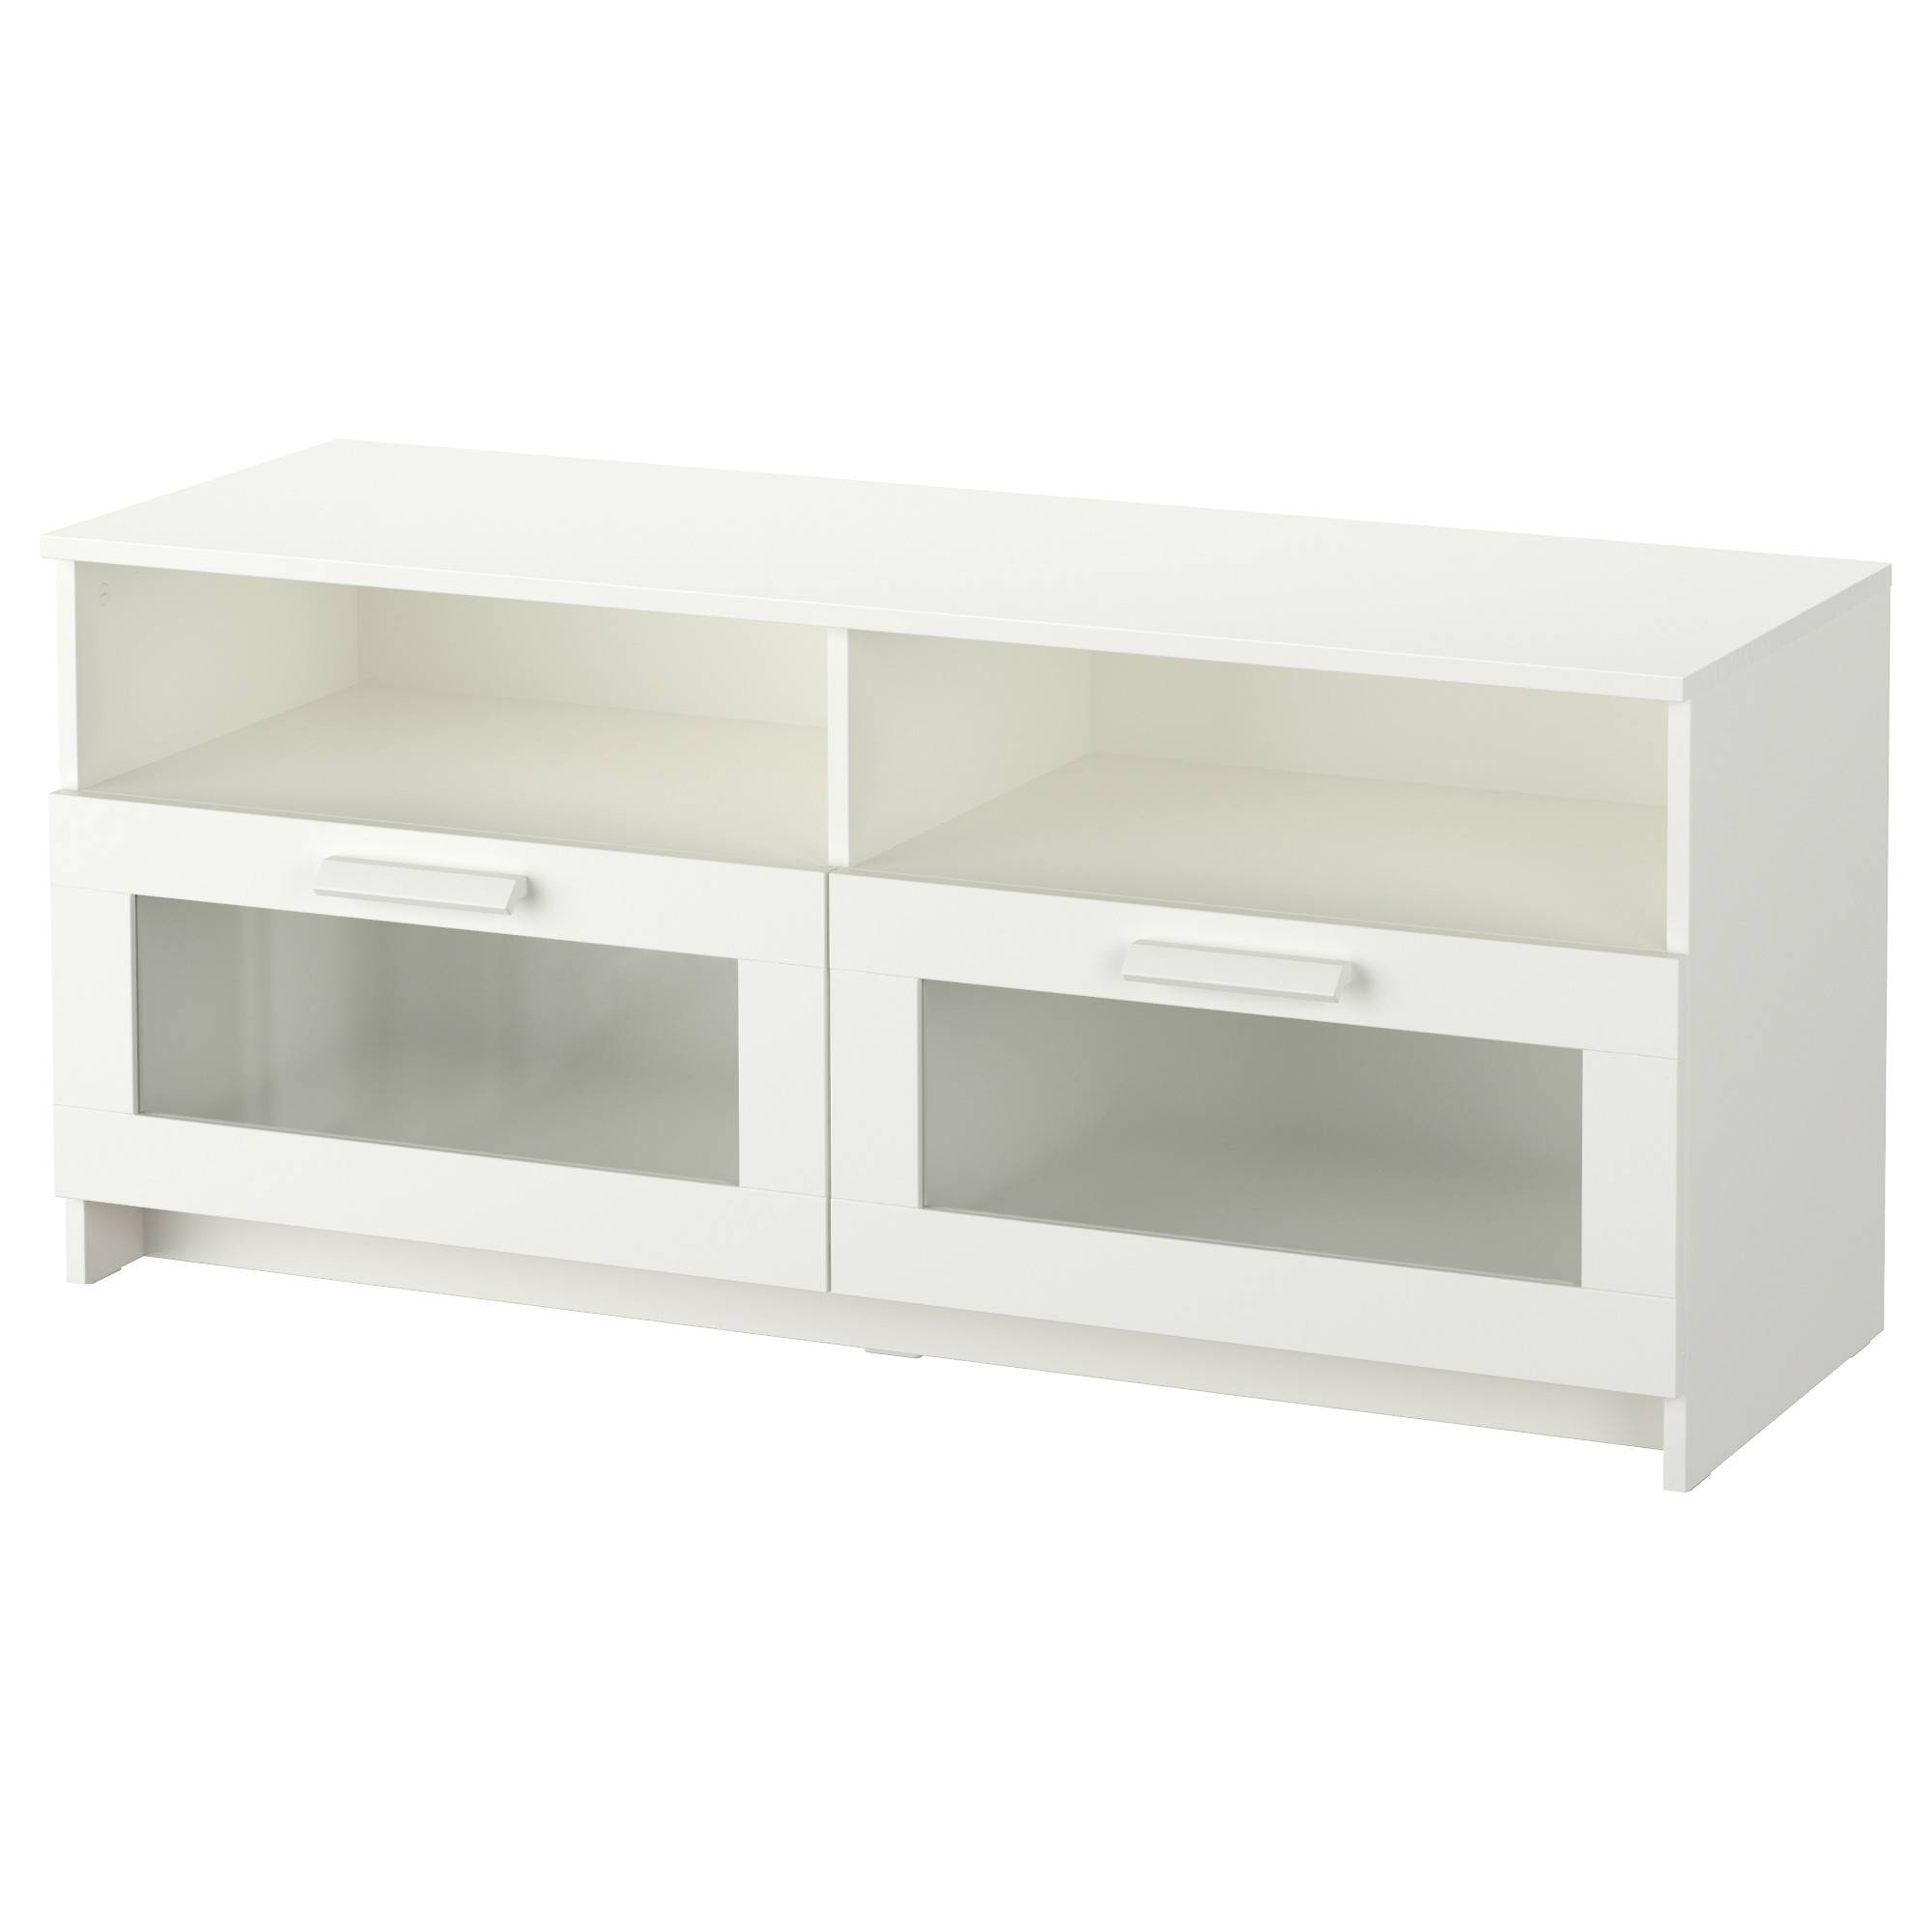 Brimnes Tv Unit - White - Ikea with 60 Cm High Tv Stand (Image 3 of 15)